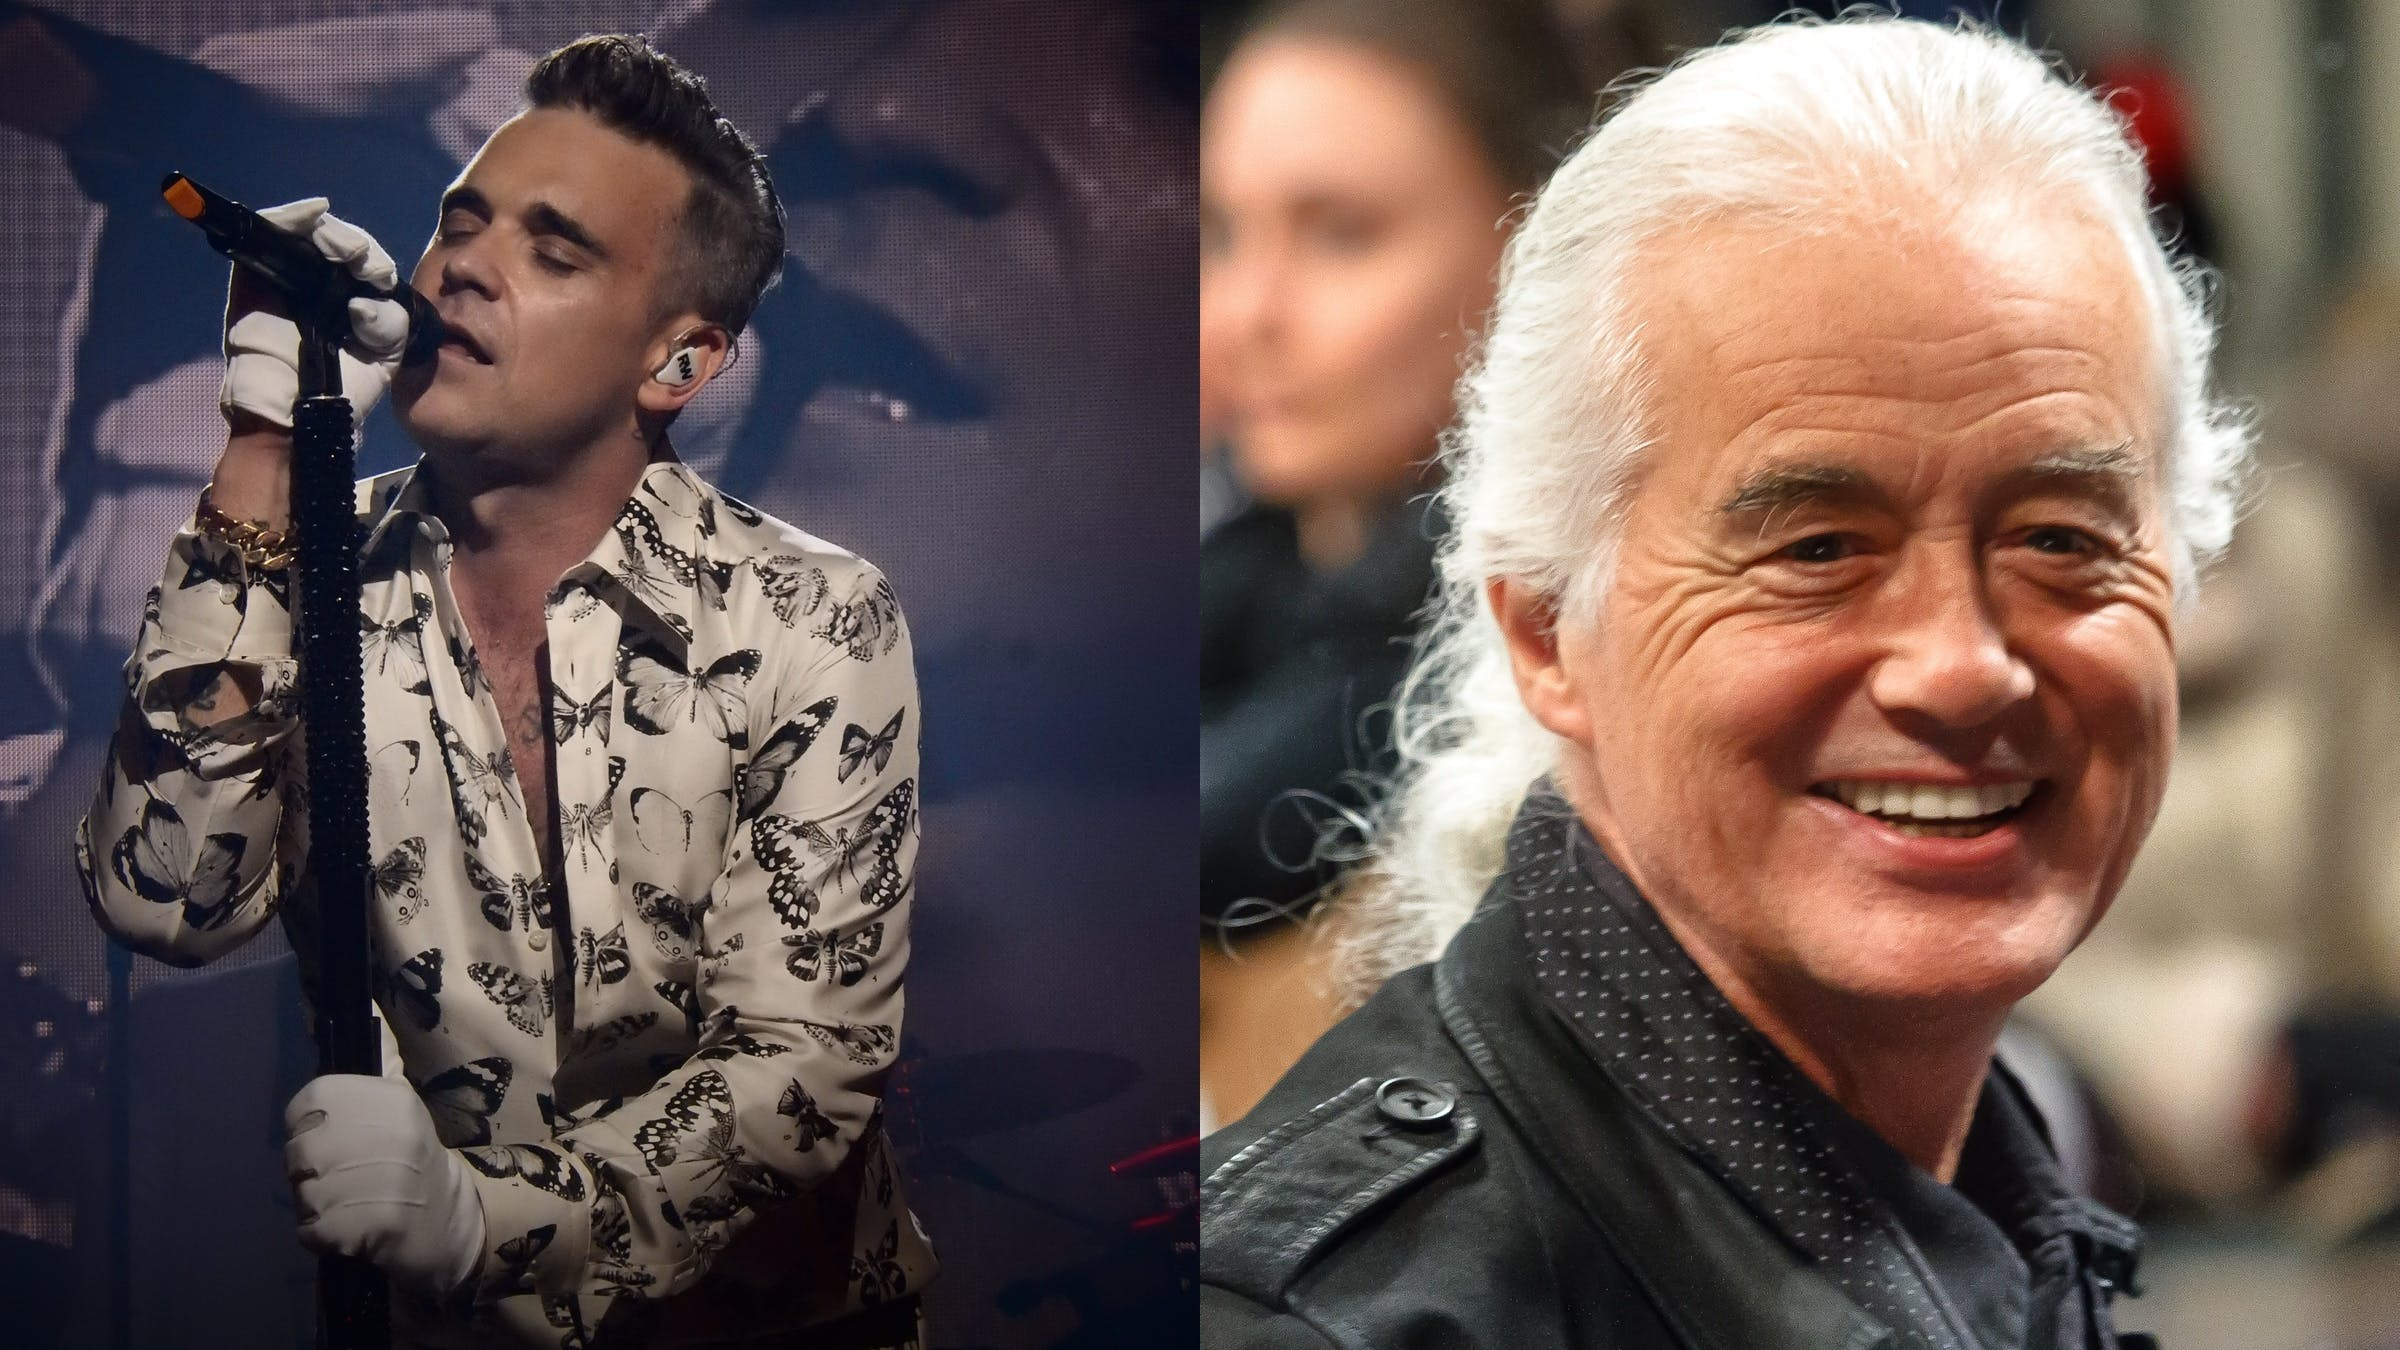 Robbie Williams Uses Black Sabbath To Torment His Neighbour, Jimmy Page